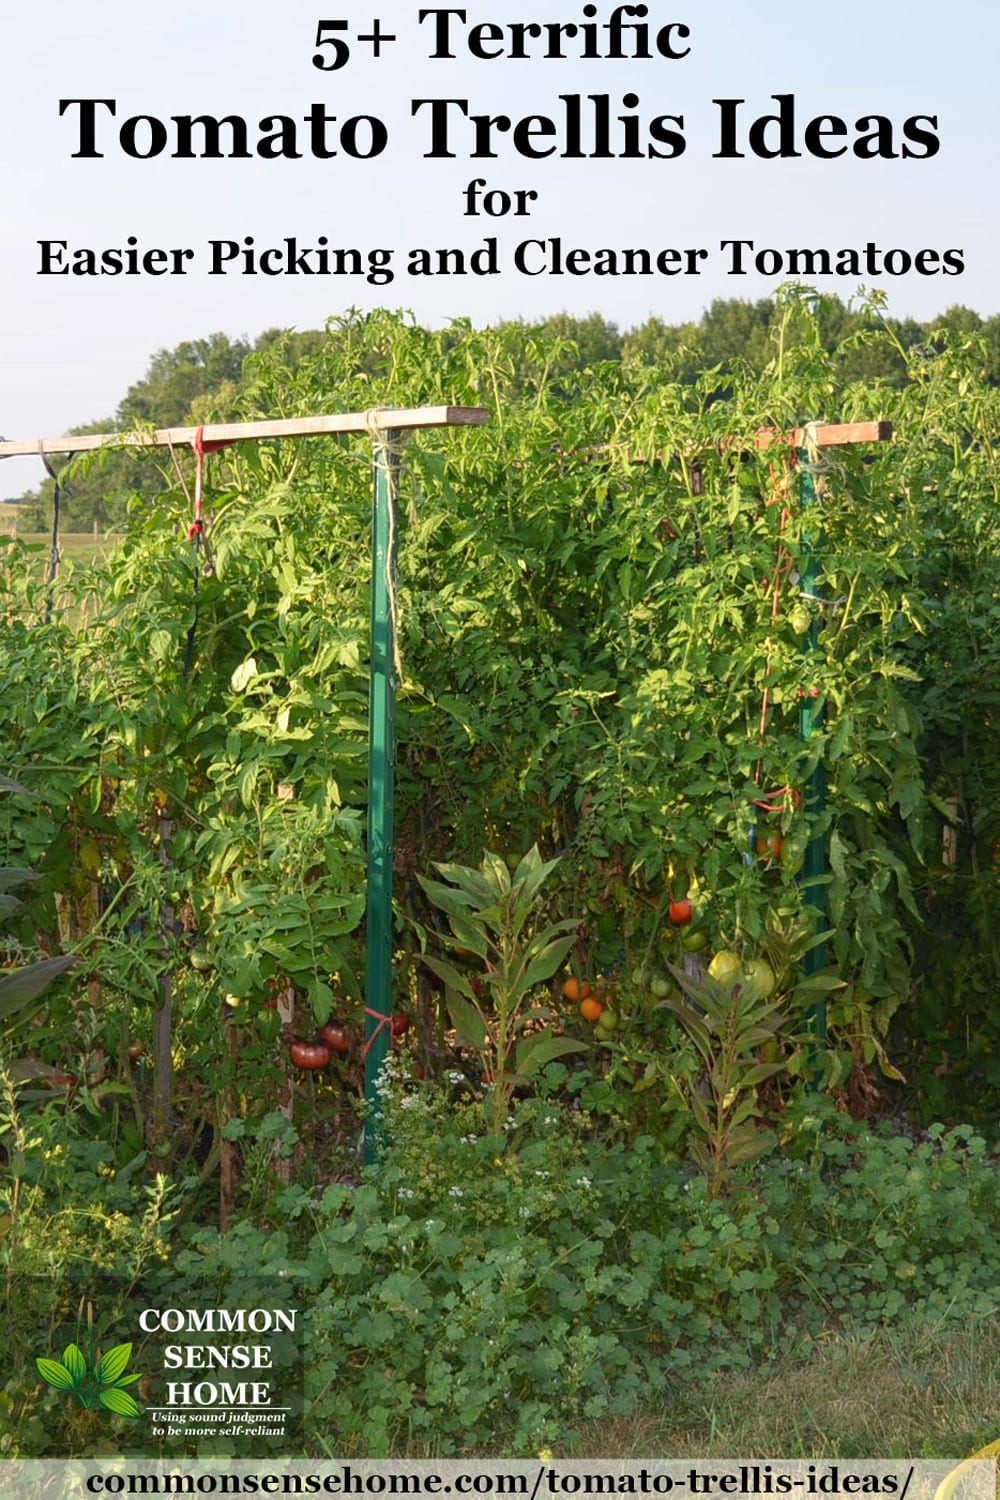 tomato trellis made with steel tomato stakes and wooden stakes. loaded with tomato plants